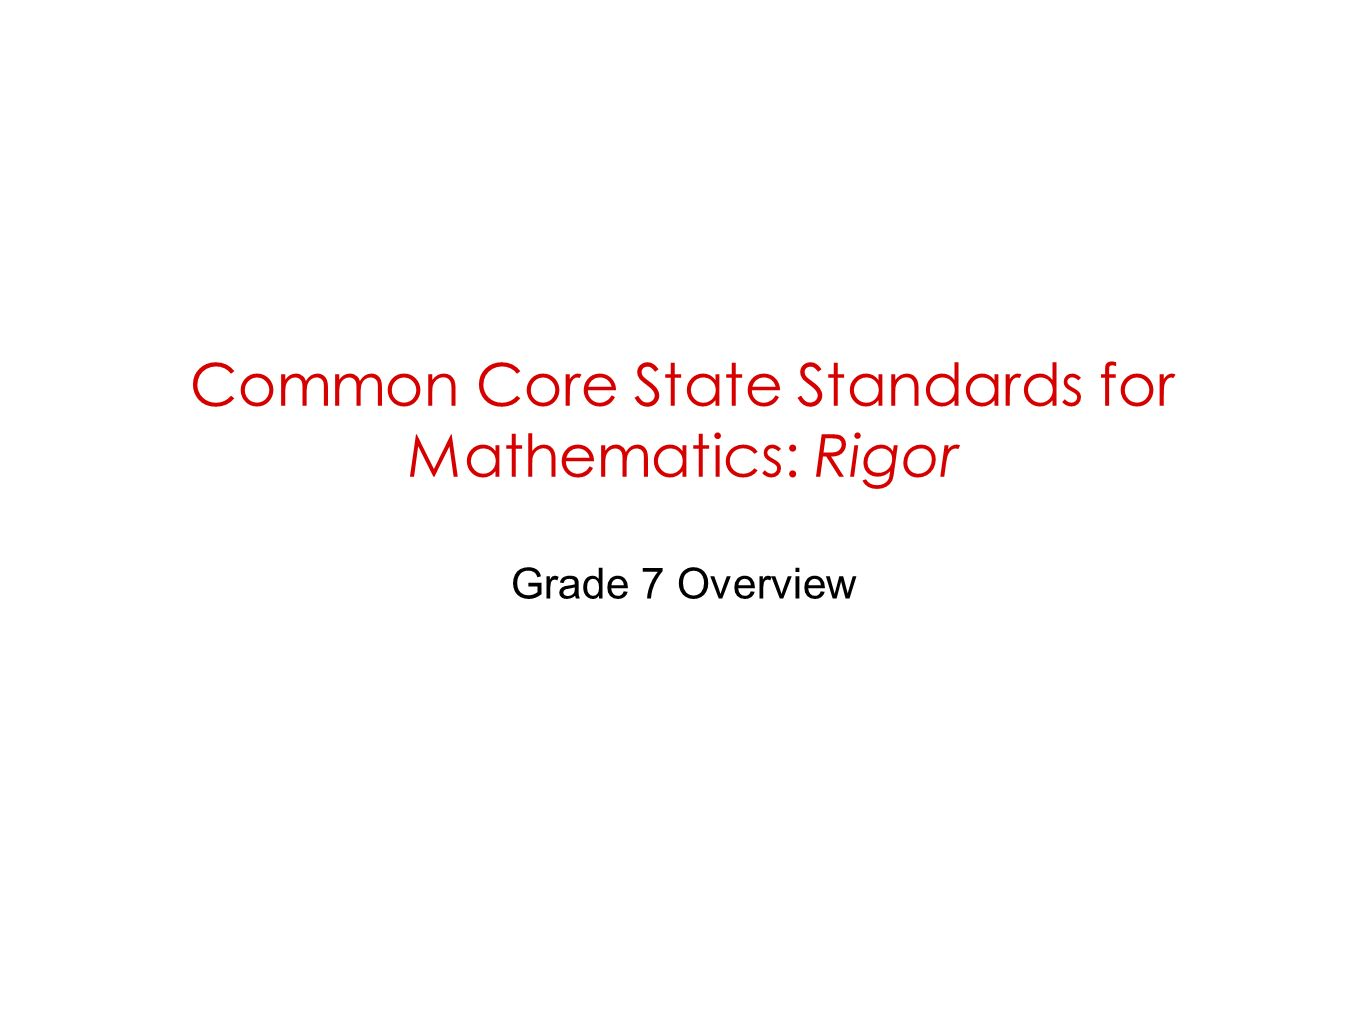 Common Core State Standards for Mathematics: Rigor